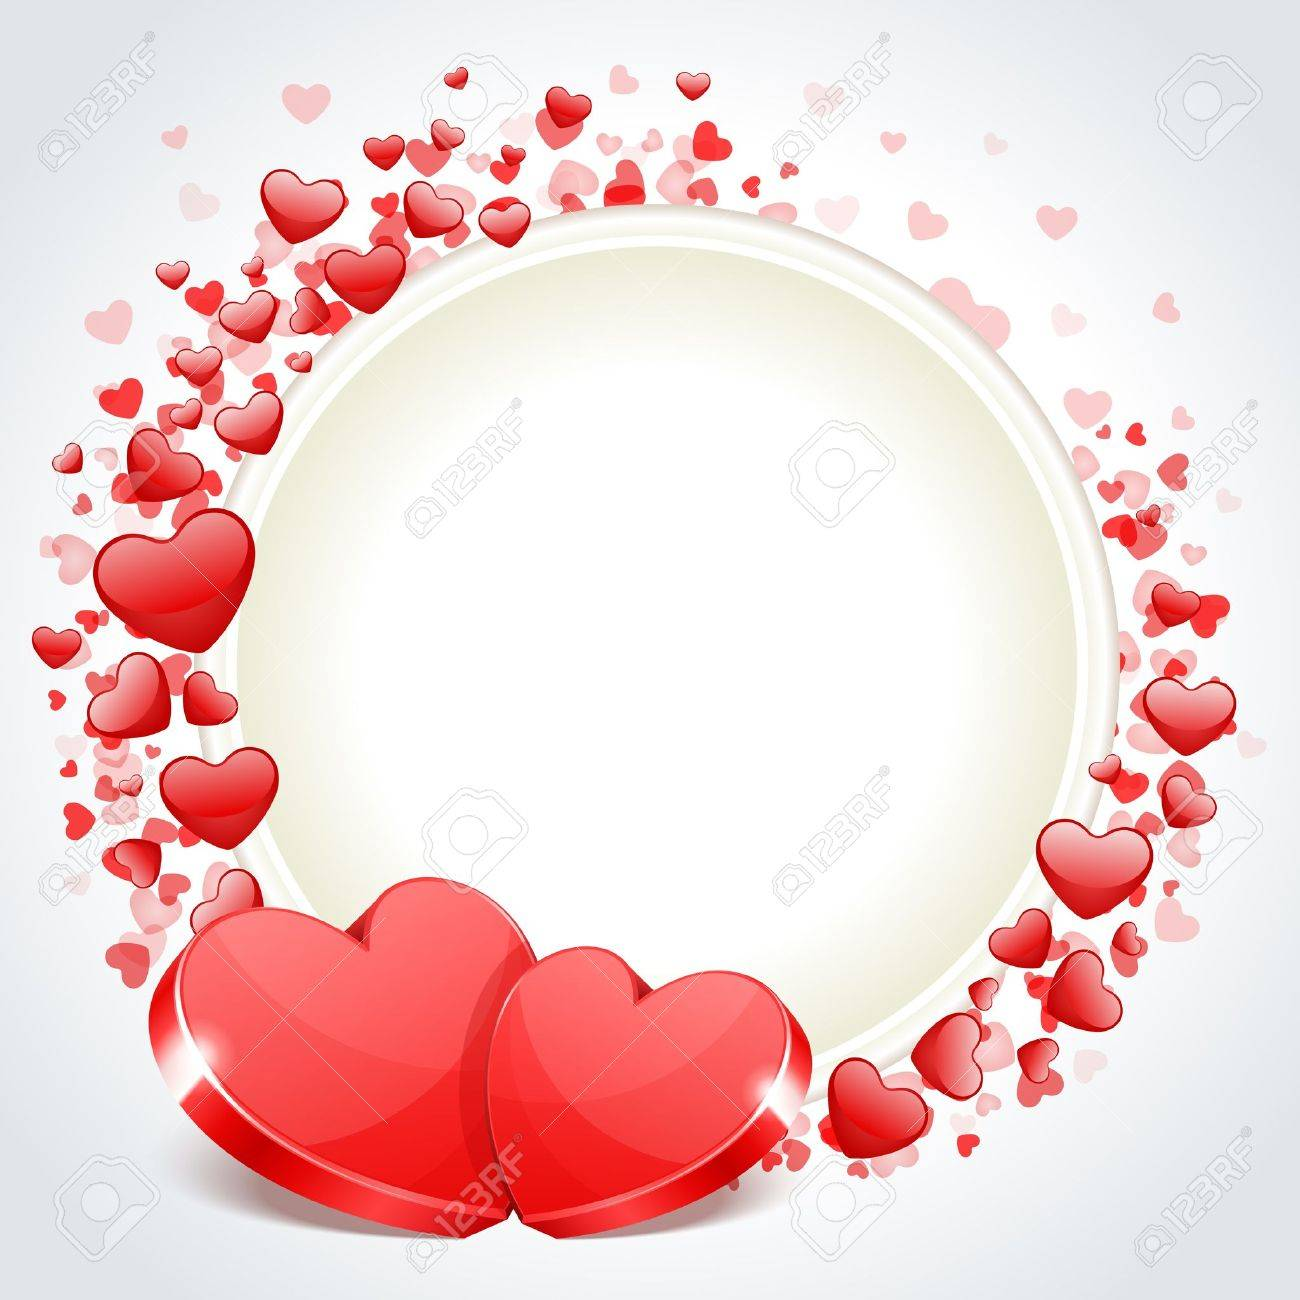 Valentine Day Frame Vector Background With Two Hearts Royalty Free ...